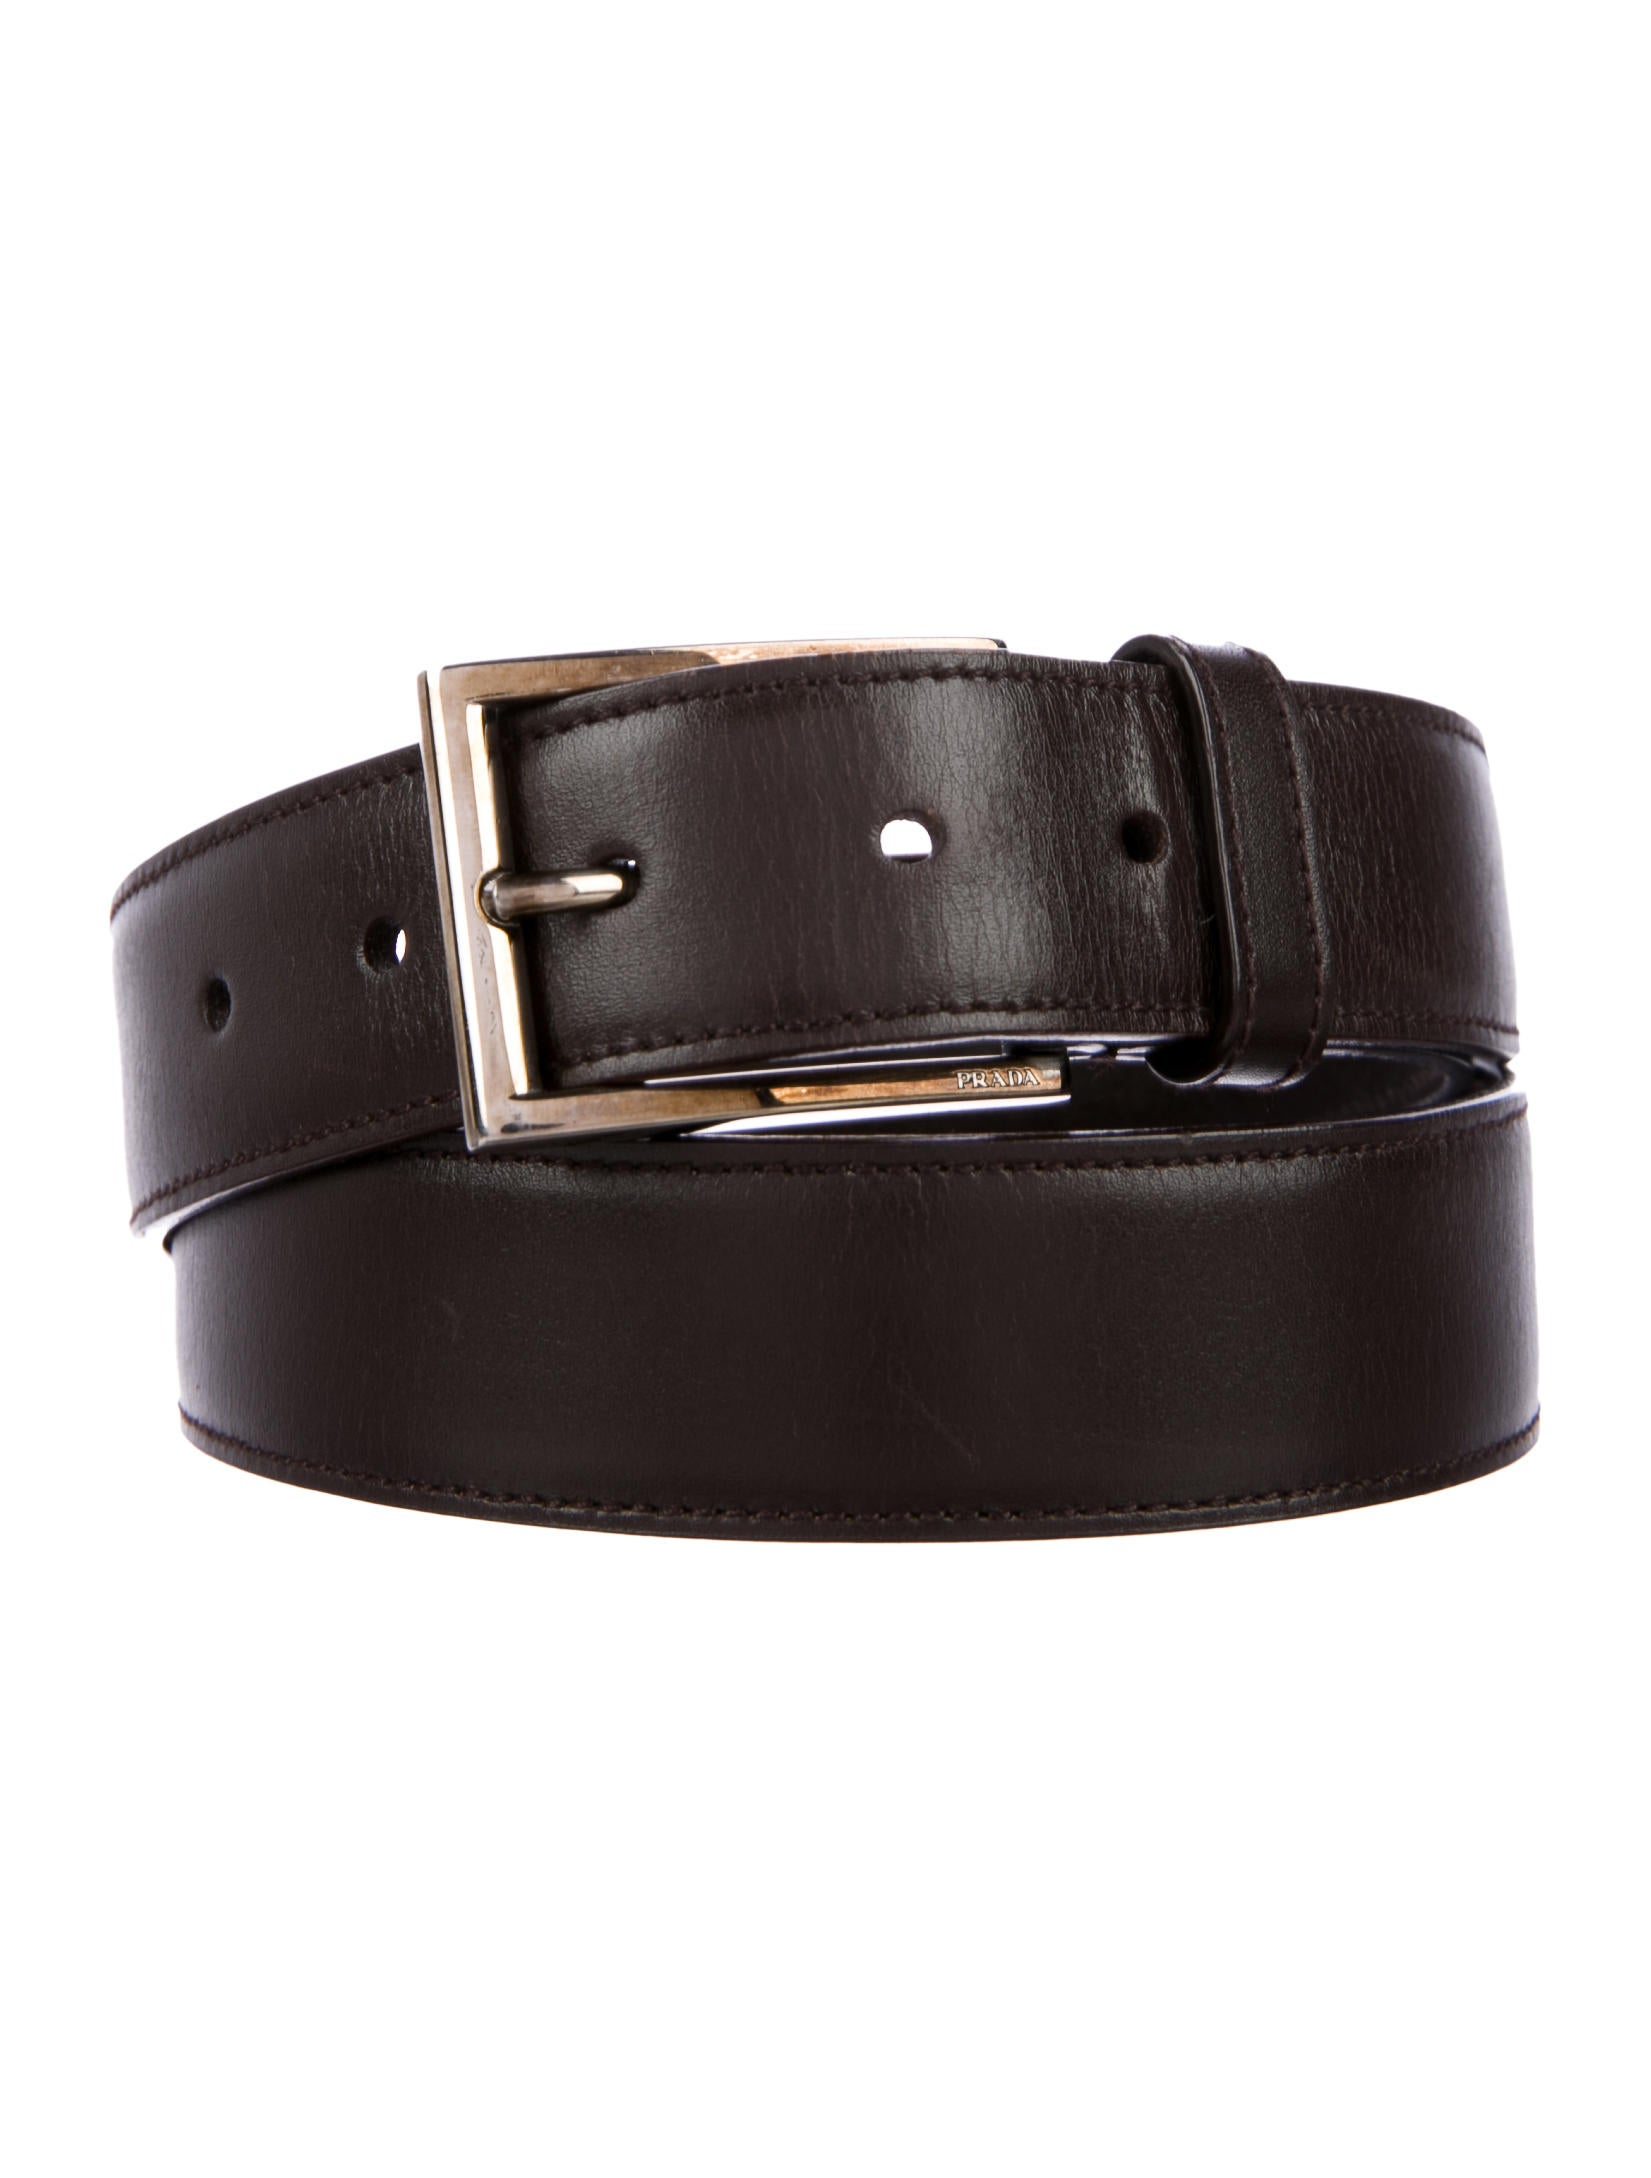 More Colors for Jos. A. Bank Leather Dress Belt. Link will open product details page.